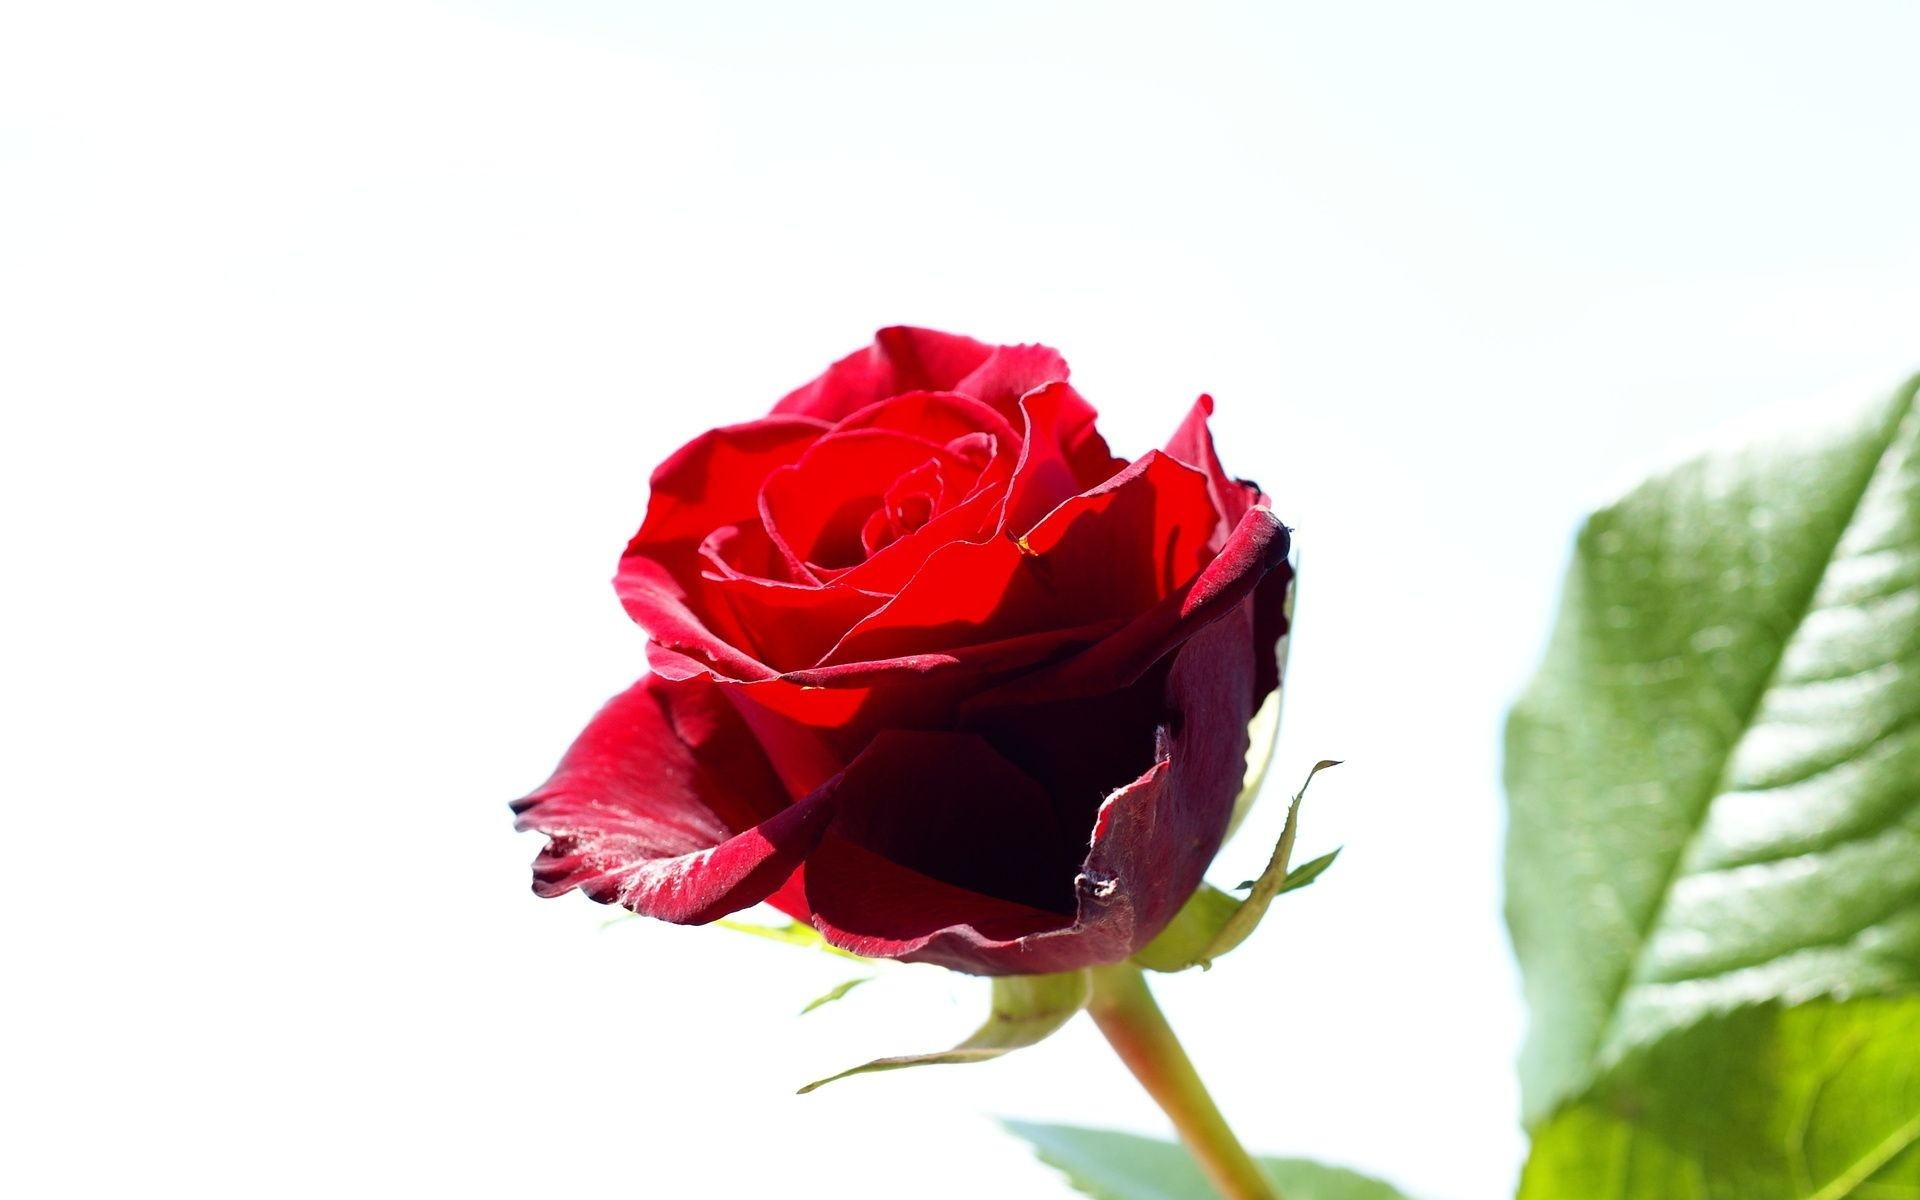 Res: 1920x1200, Wallpapers Backgrounds - Tags red rose roses flower background screensaver pozadia tapety flowers